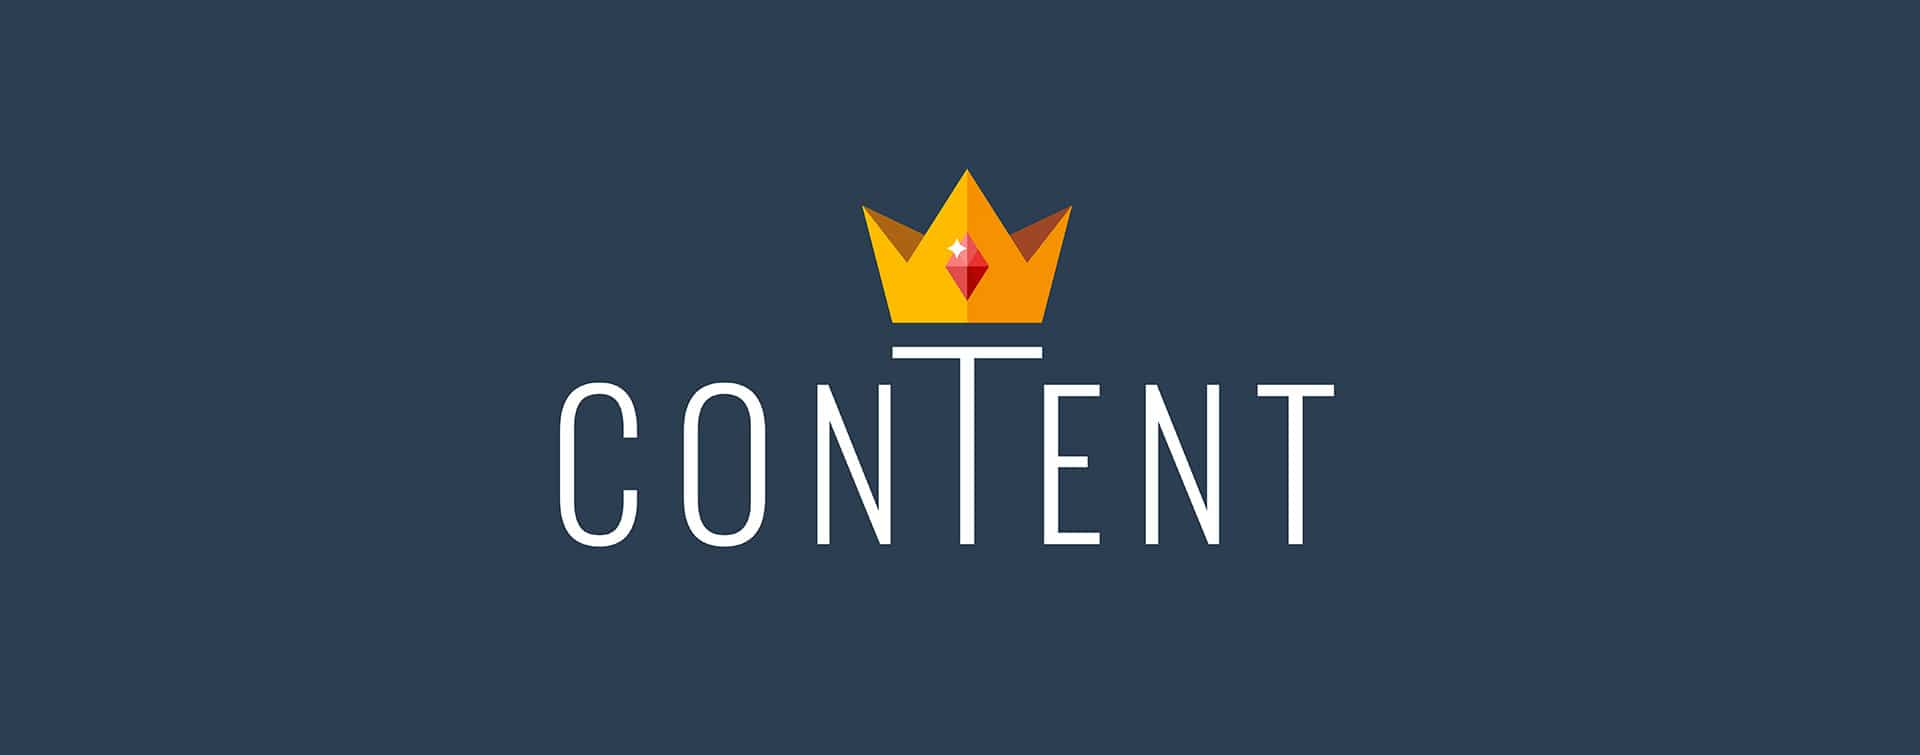 content - social marketing guru